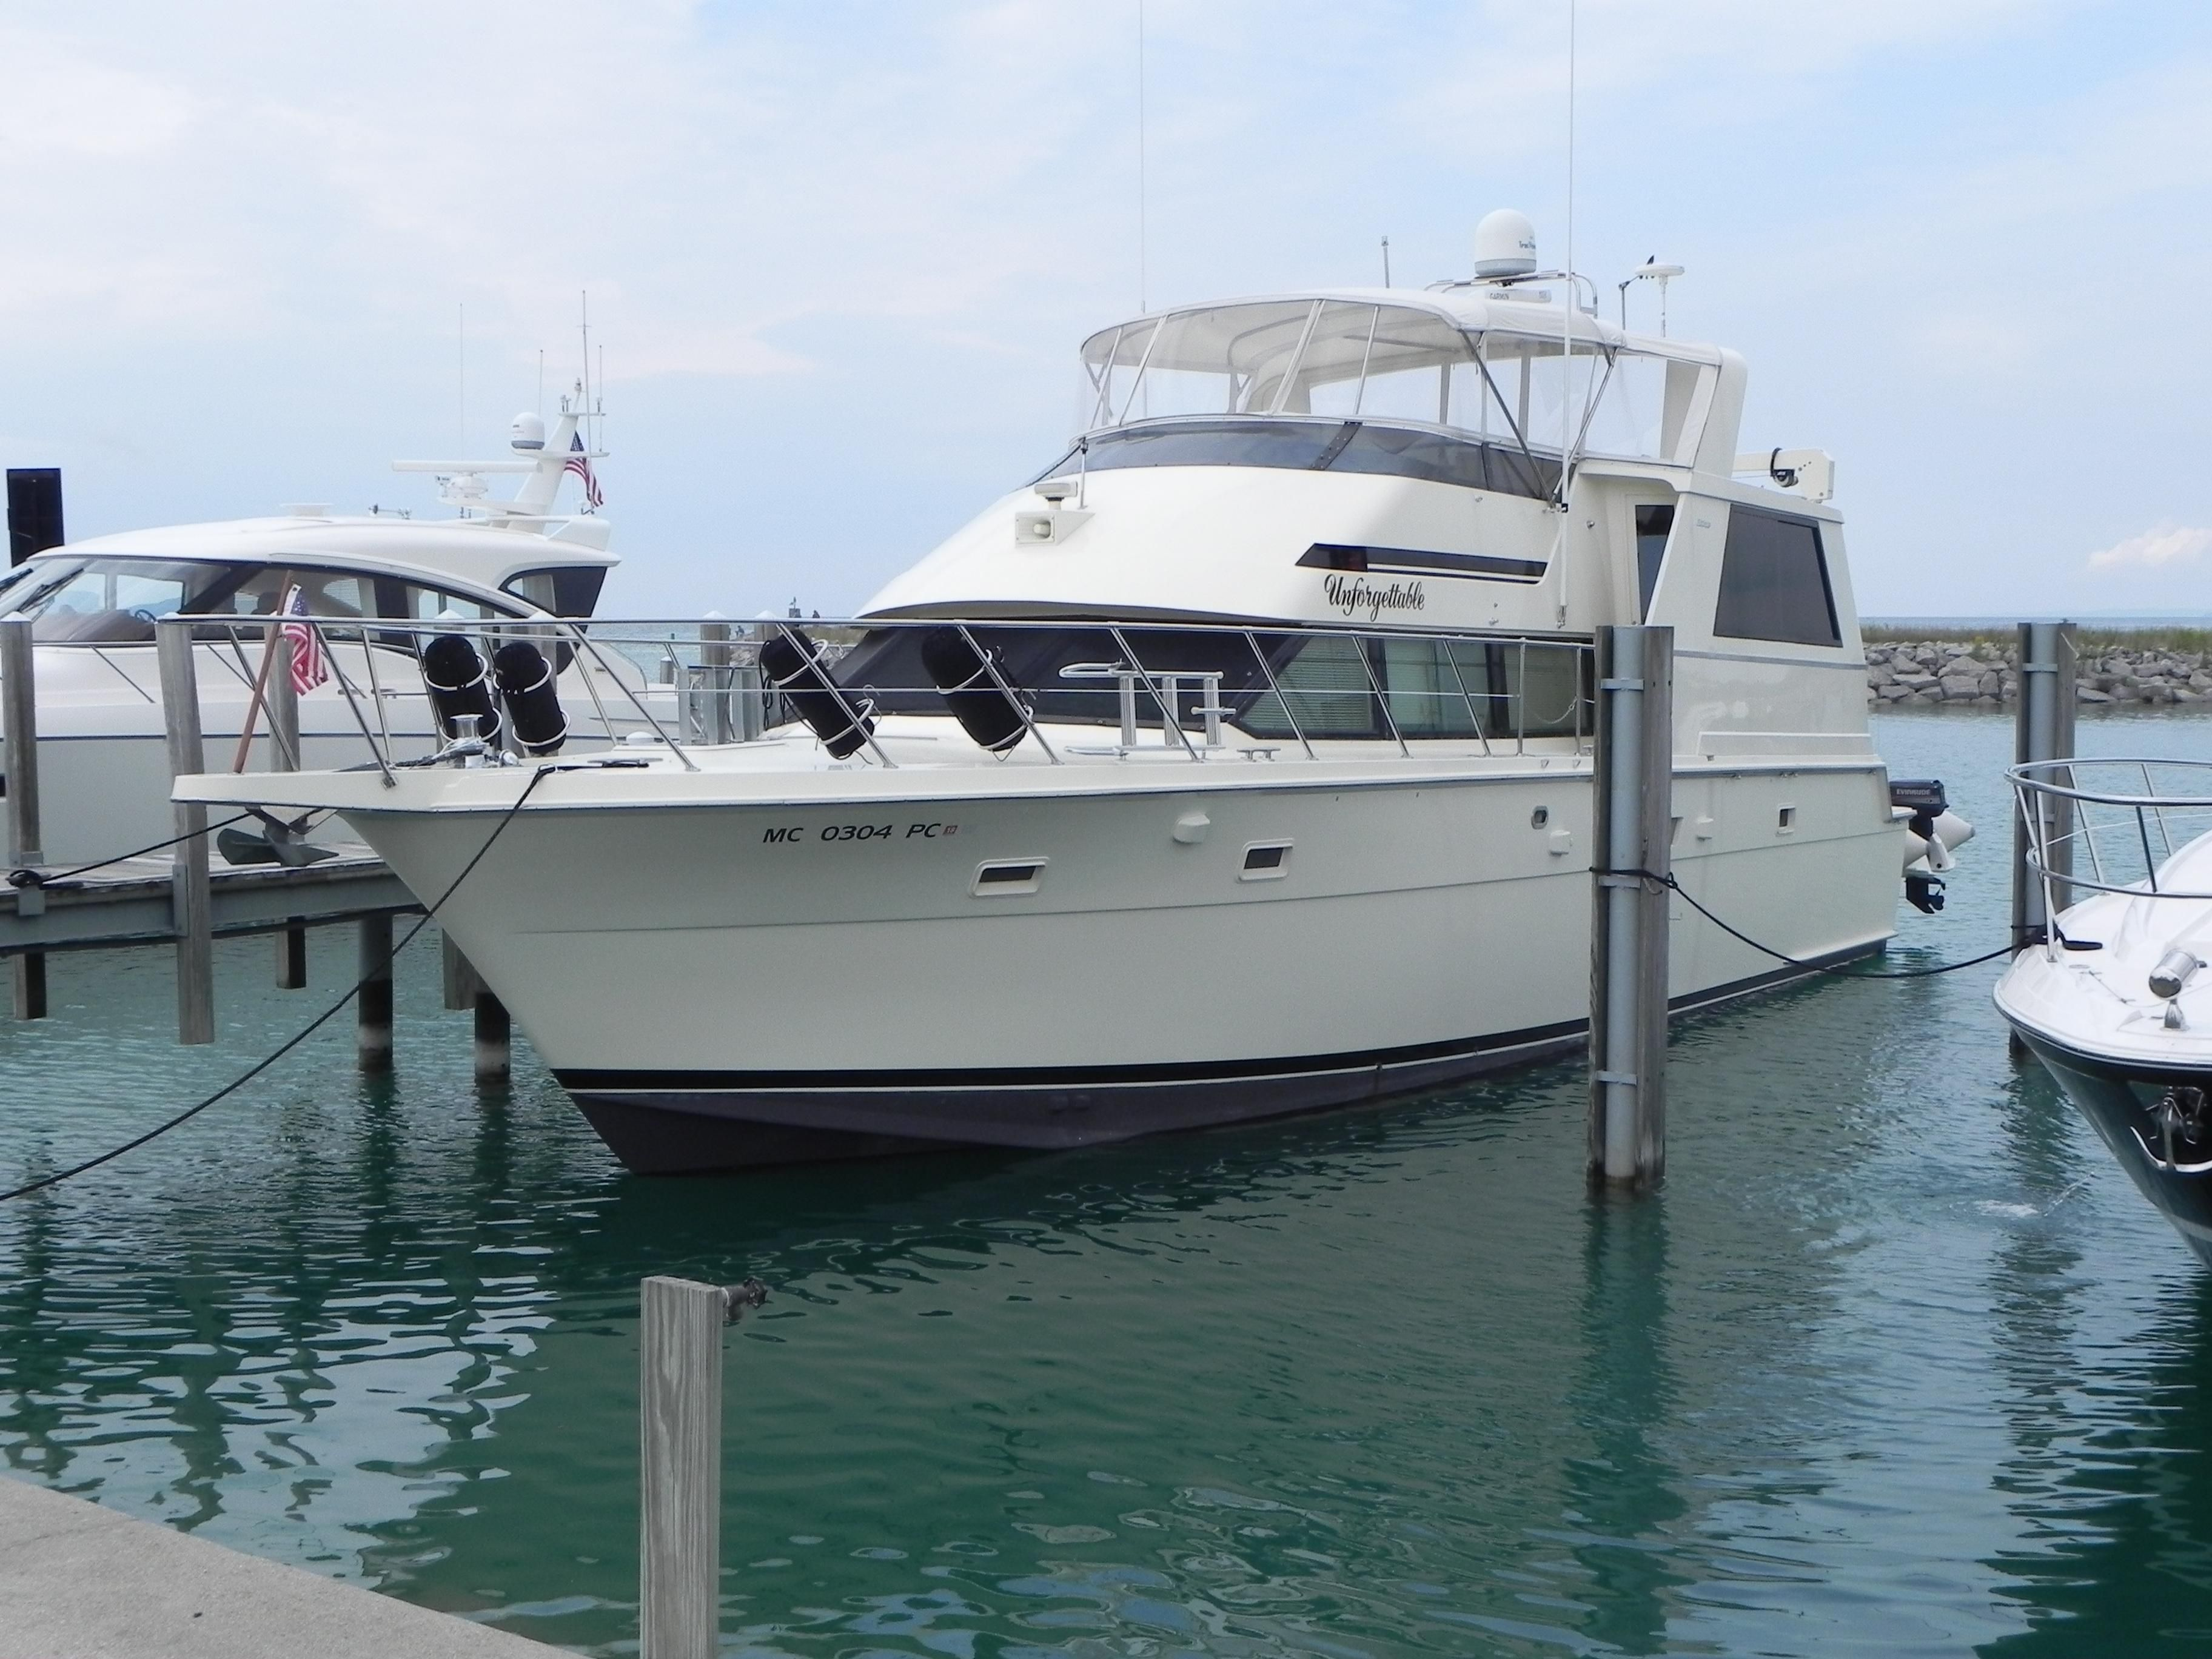 1992 Hatteras 52 Cockpit Motor Yacht Power Boat For Sale - www.yachtworld.com